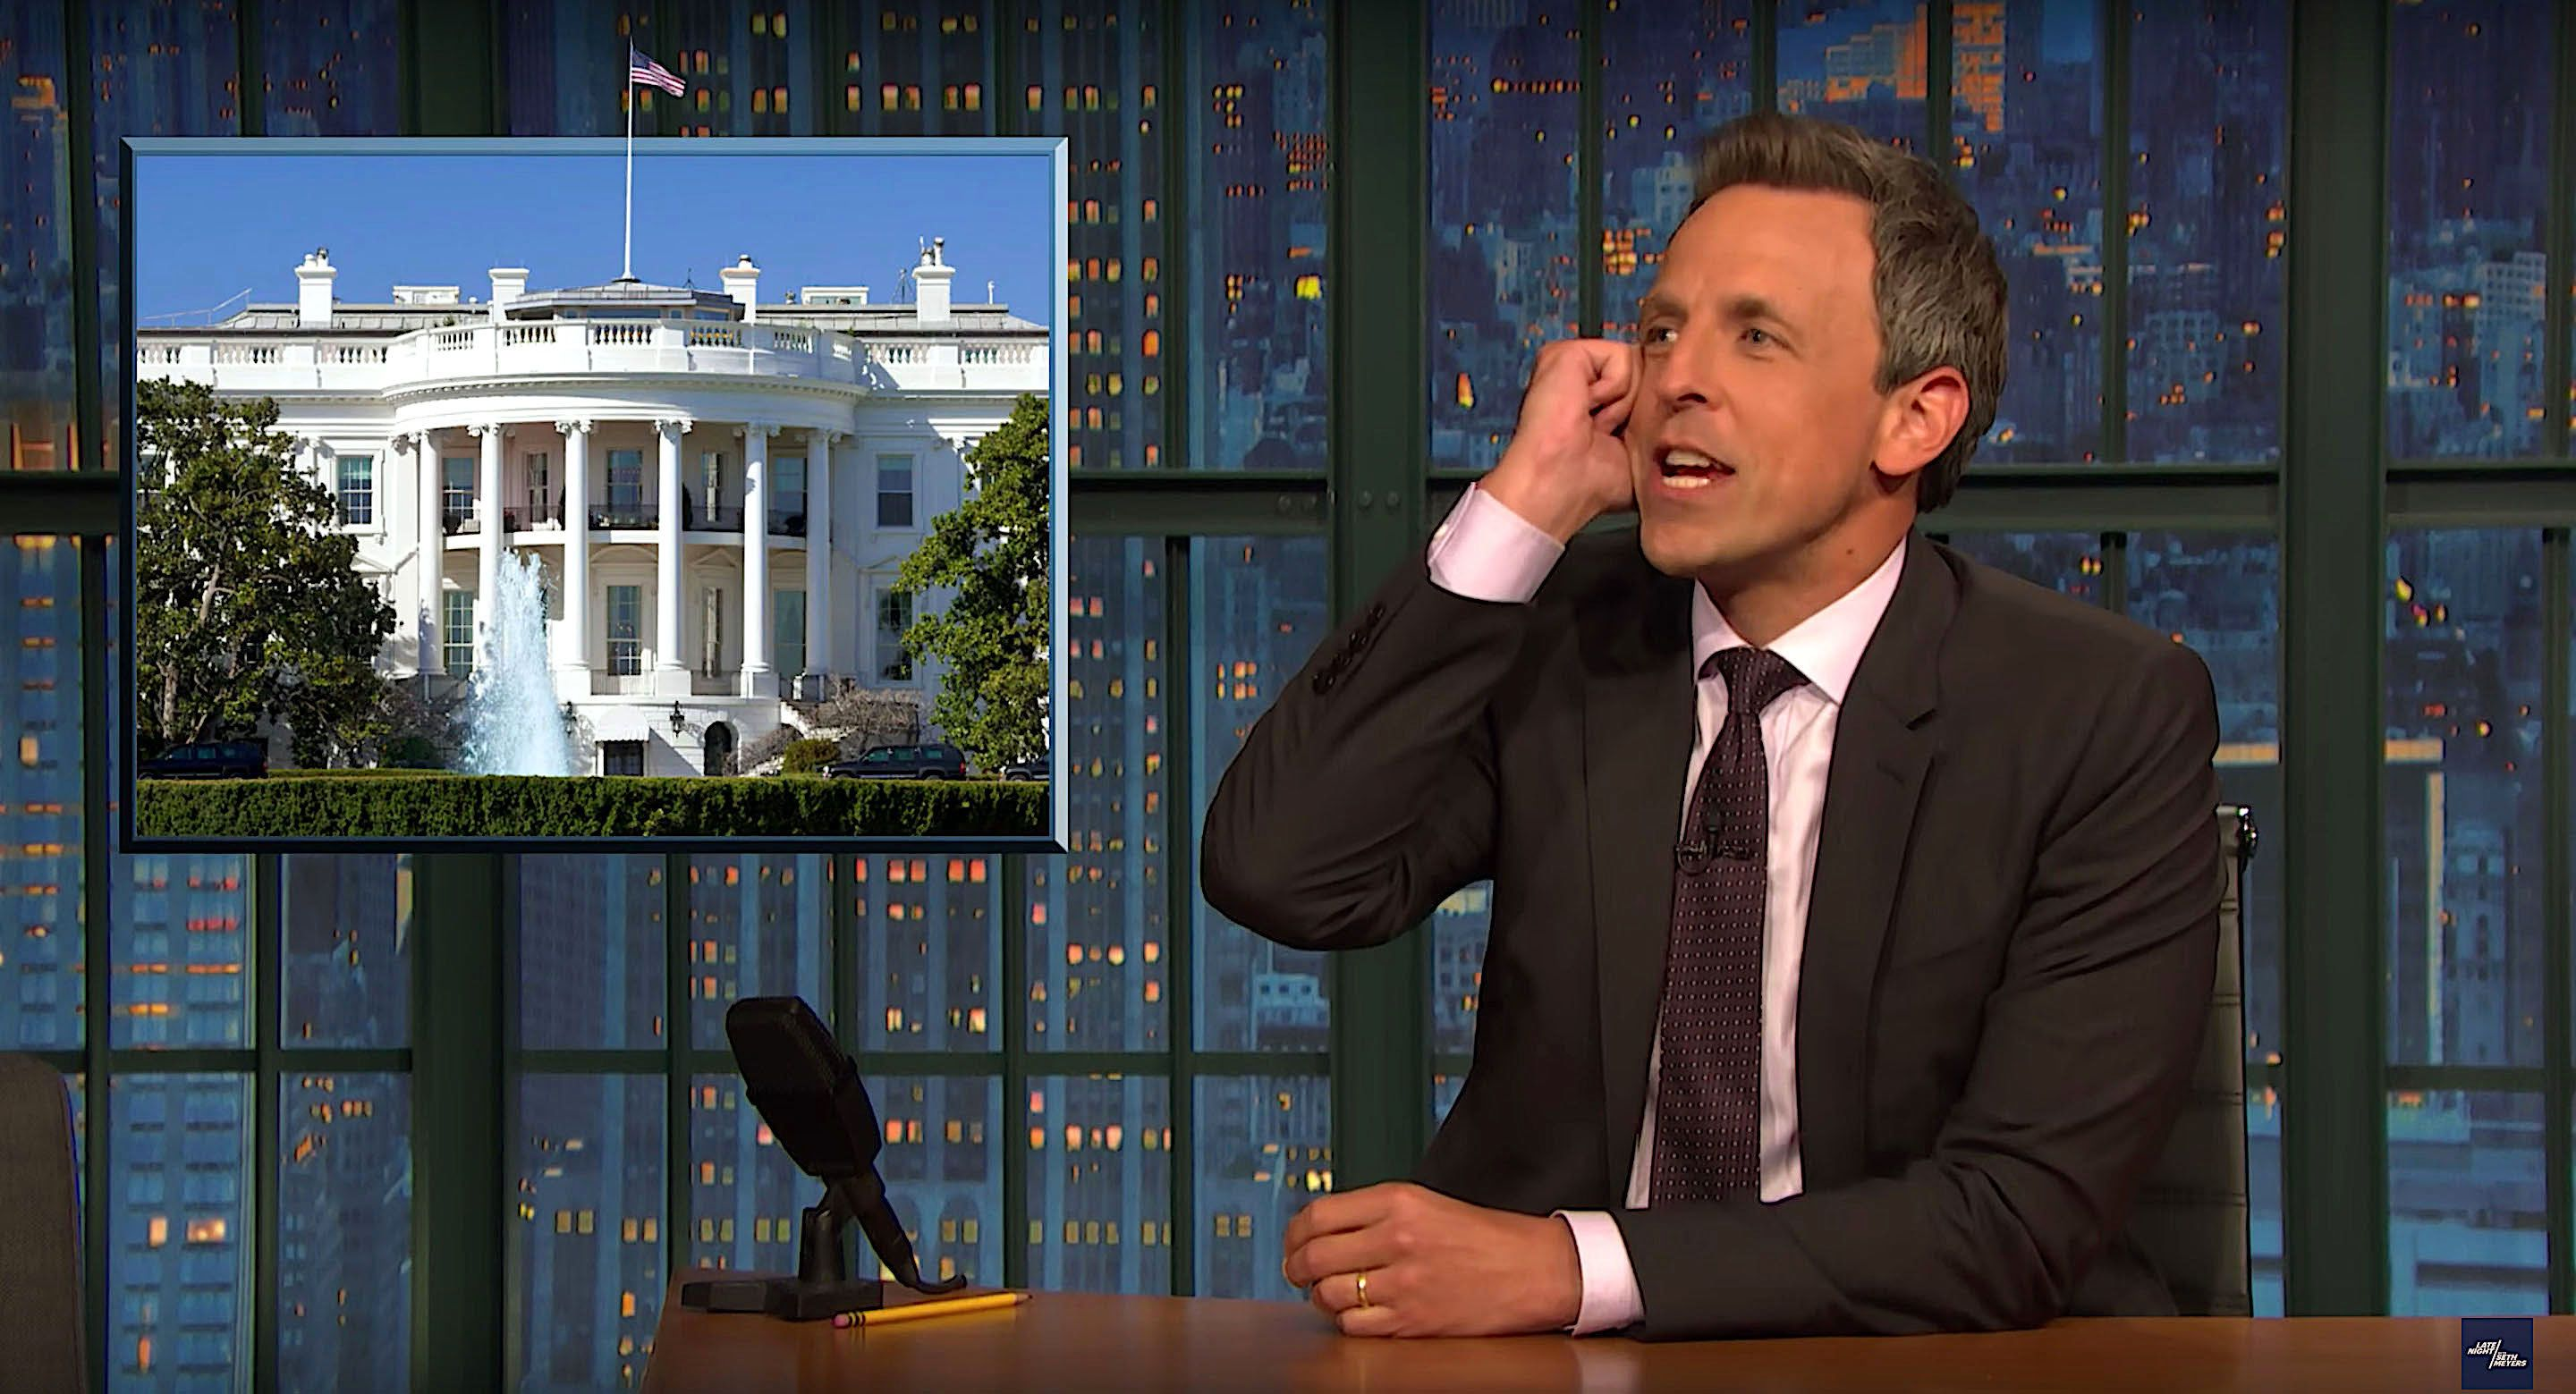 Seth Meyers of Late Night weighs in on the anonymous op-ed and Bob Woodwards new book